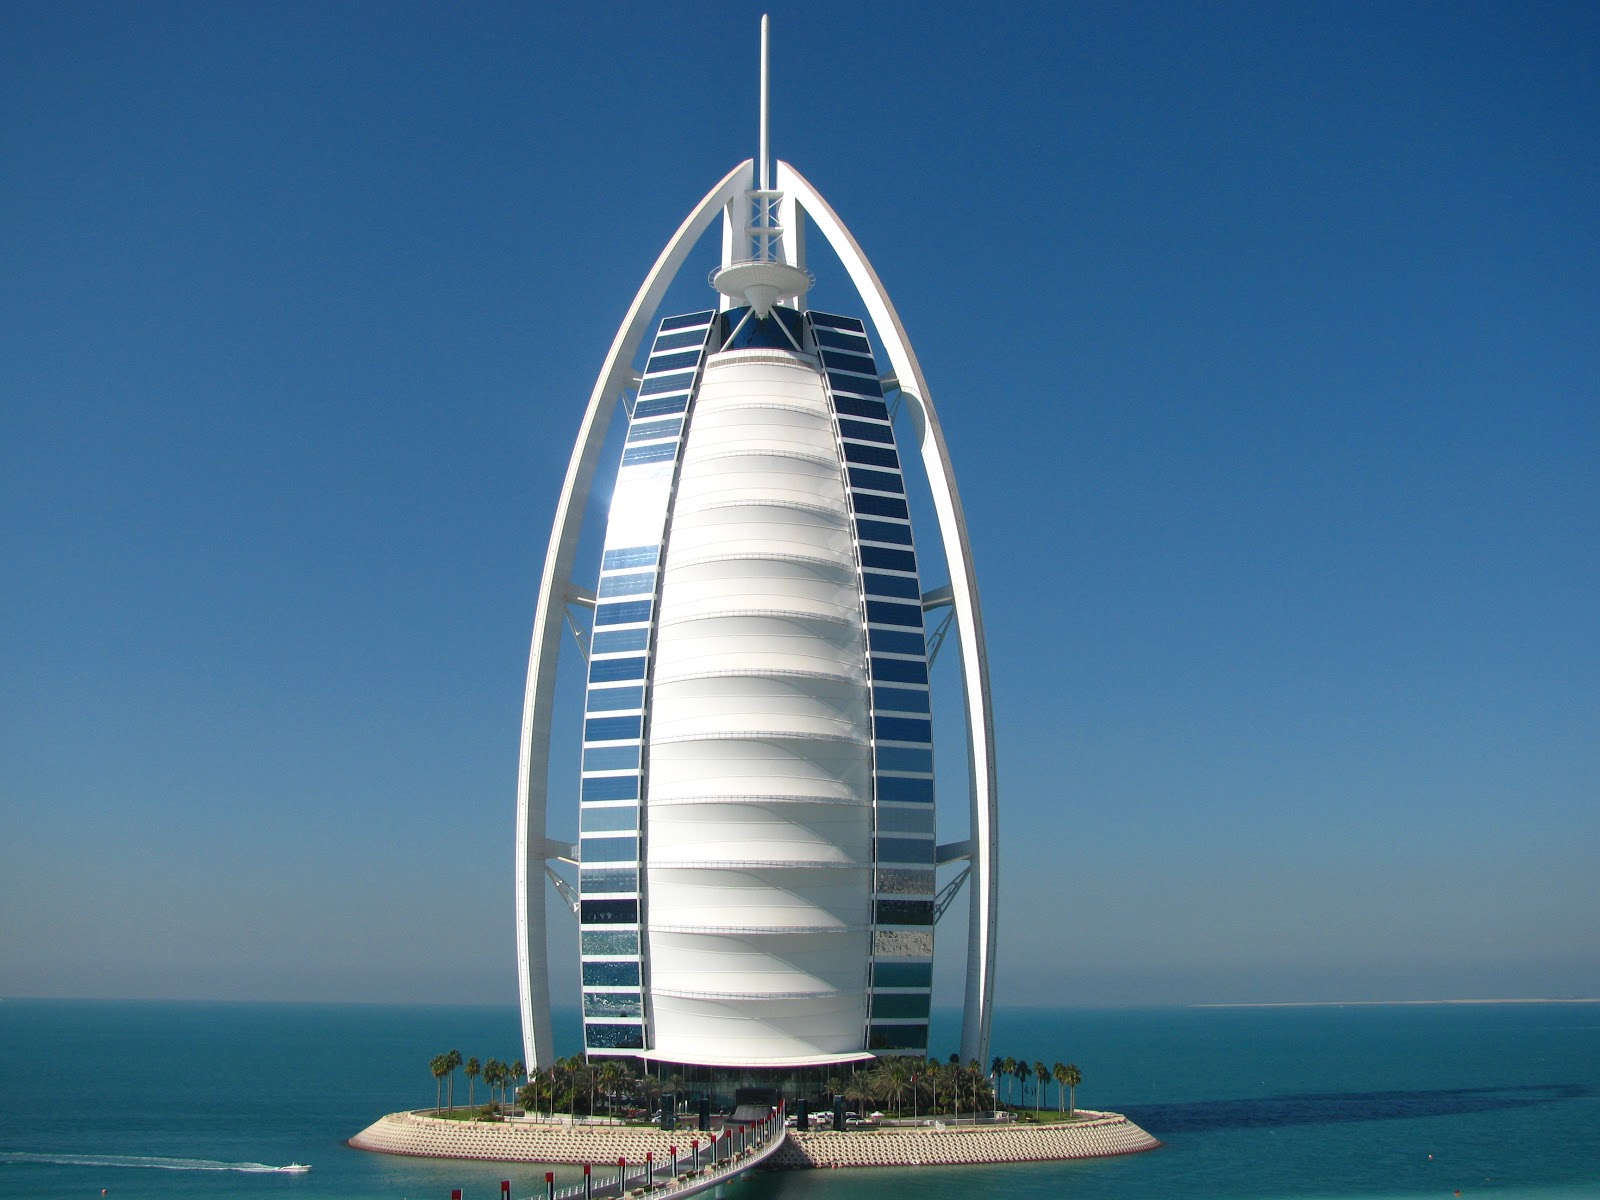 a vacation to dubai essay A memorable journey  the height of about 829 meters one cannot miss the world's tallest construction while having a trip to dubai my summer vacation essay.